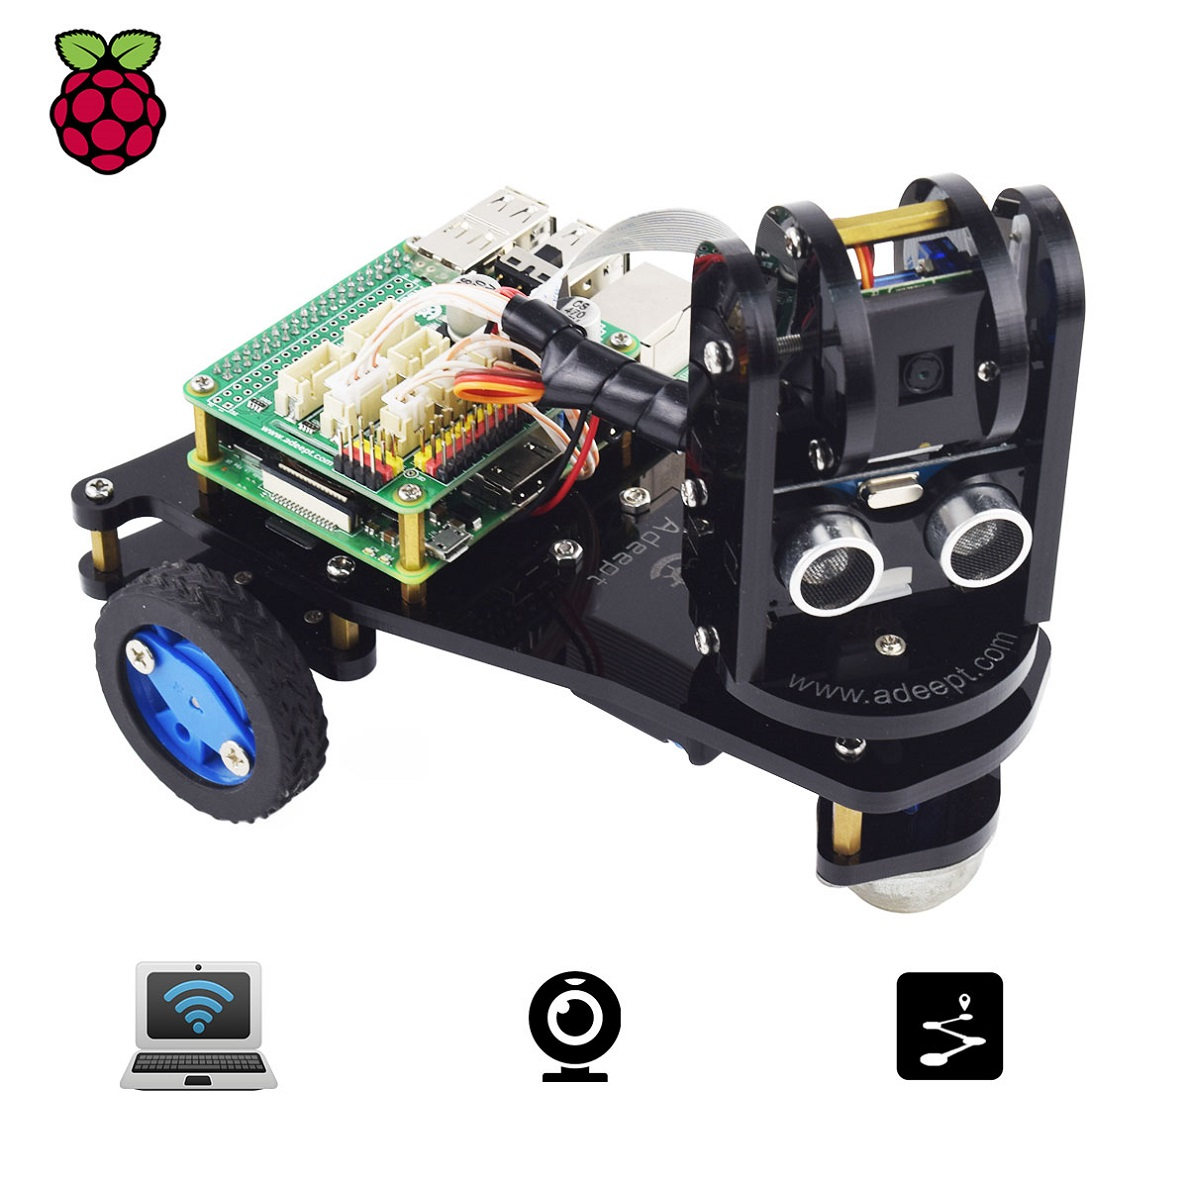 Installation of Raspberry PiCar-A Program with OpenCV FPV Function